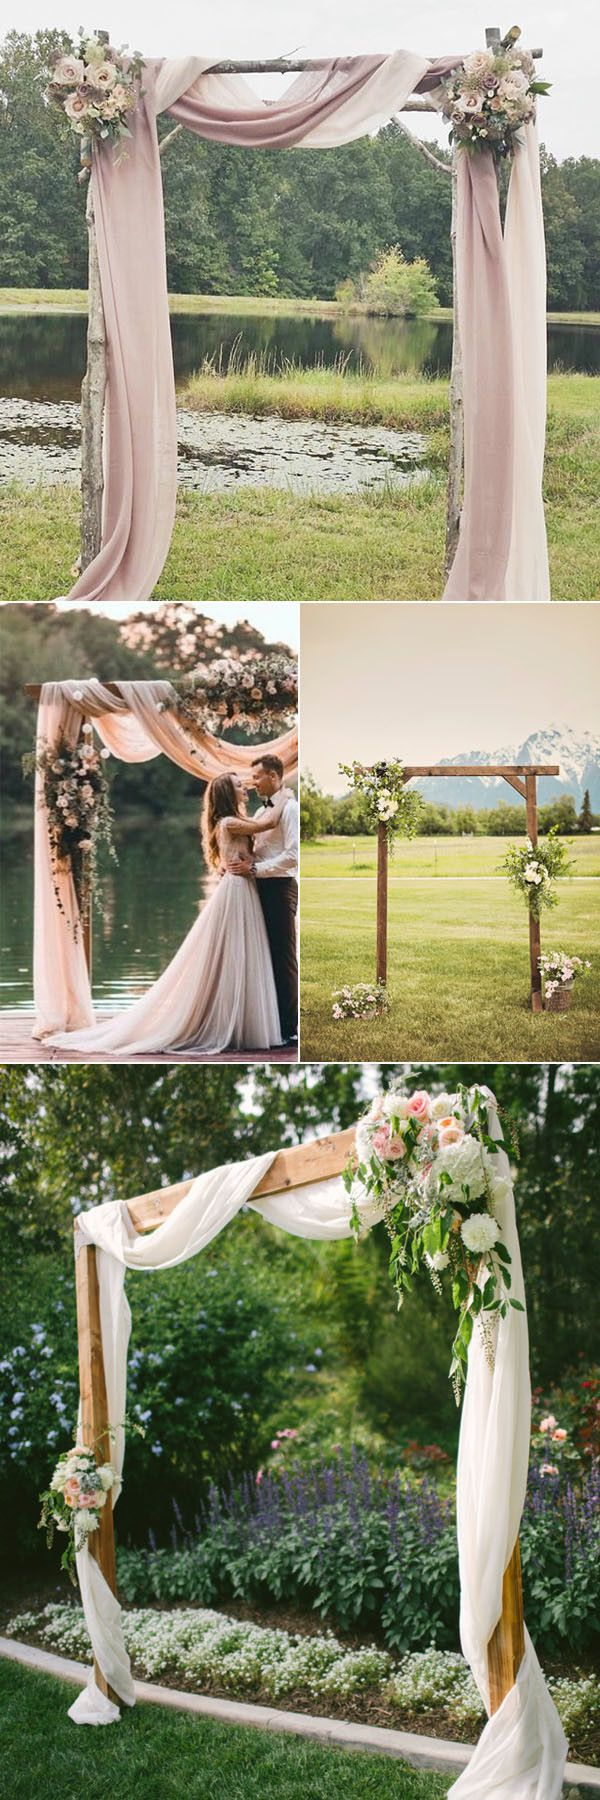 rustic wedding arches for your outdoor wedding ide…